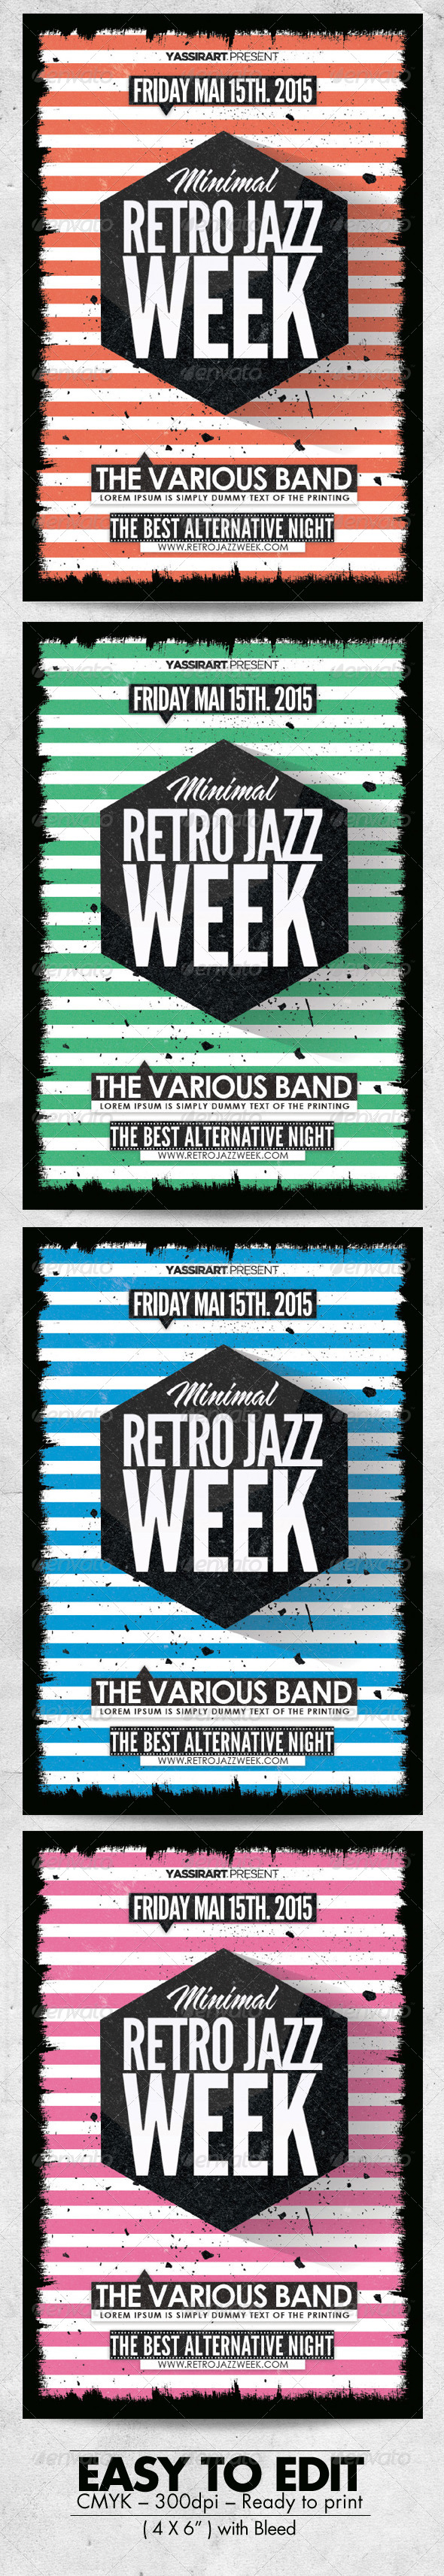 GraphicRiver Minimal Retro Jazz Week Flyer 7447512